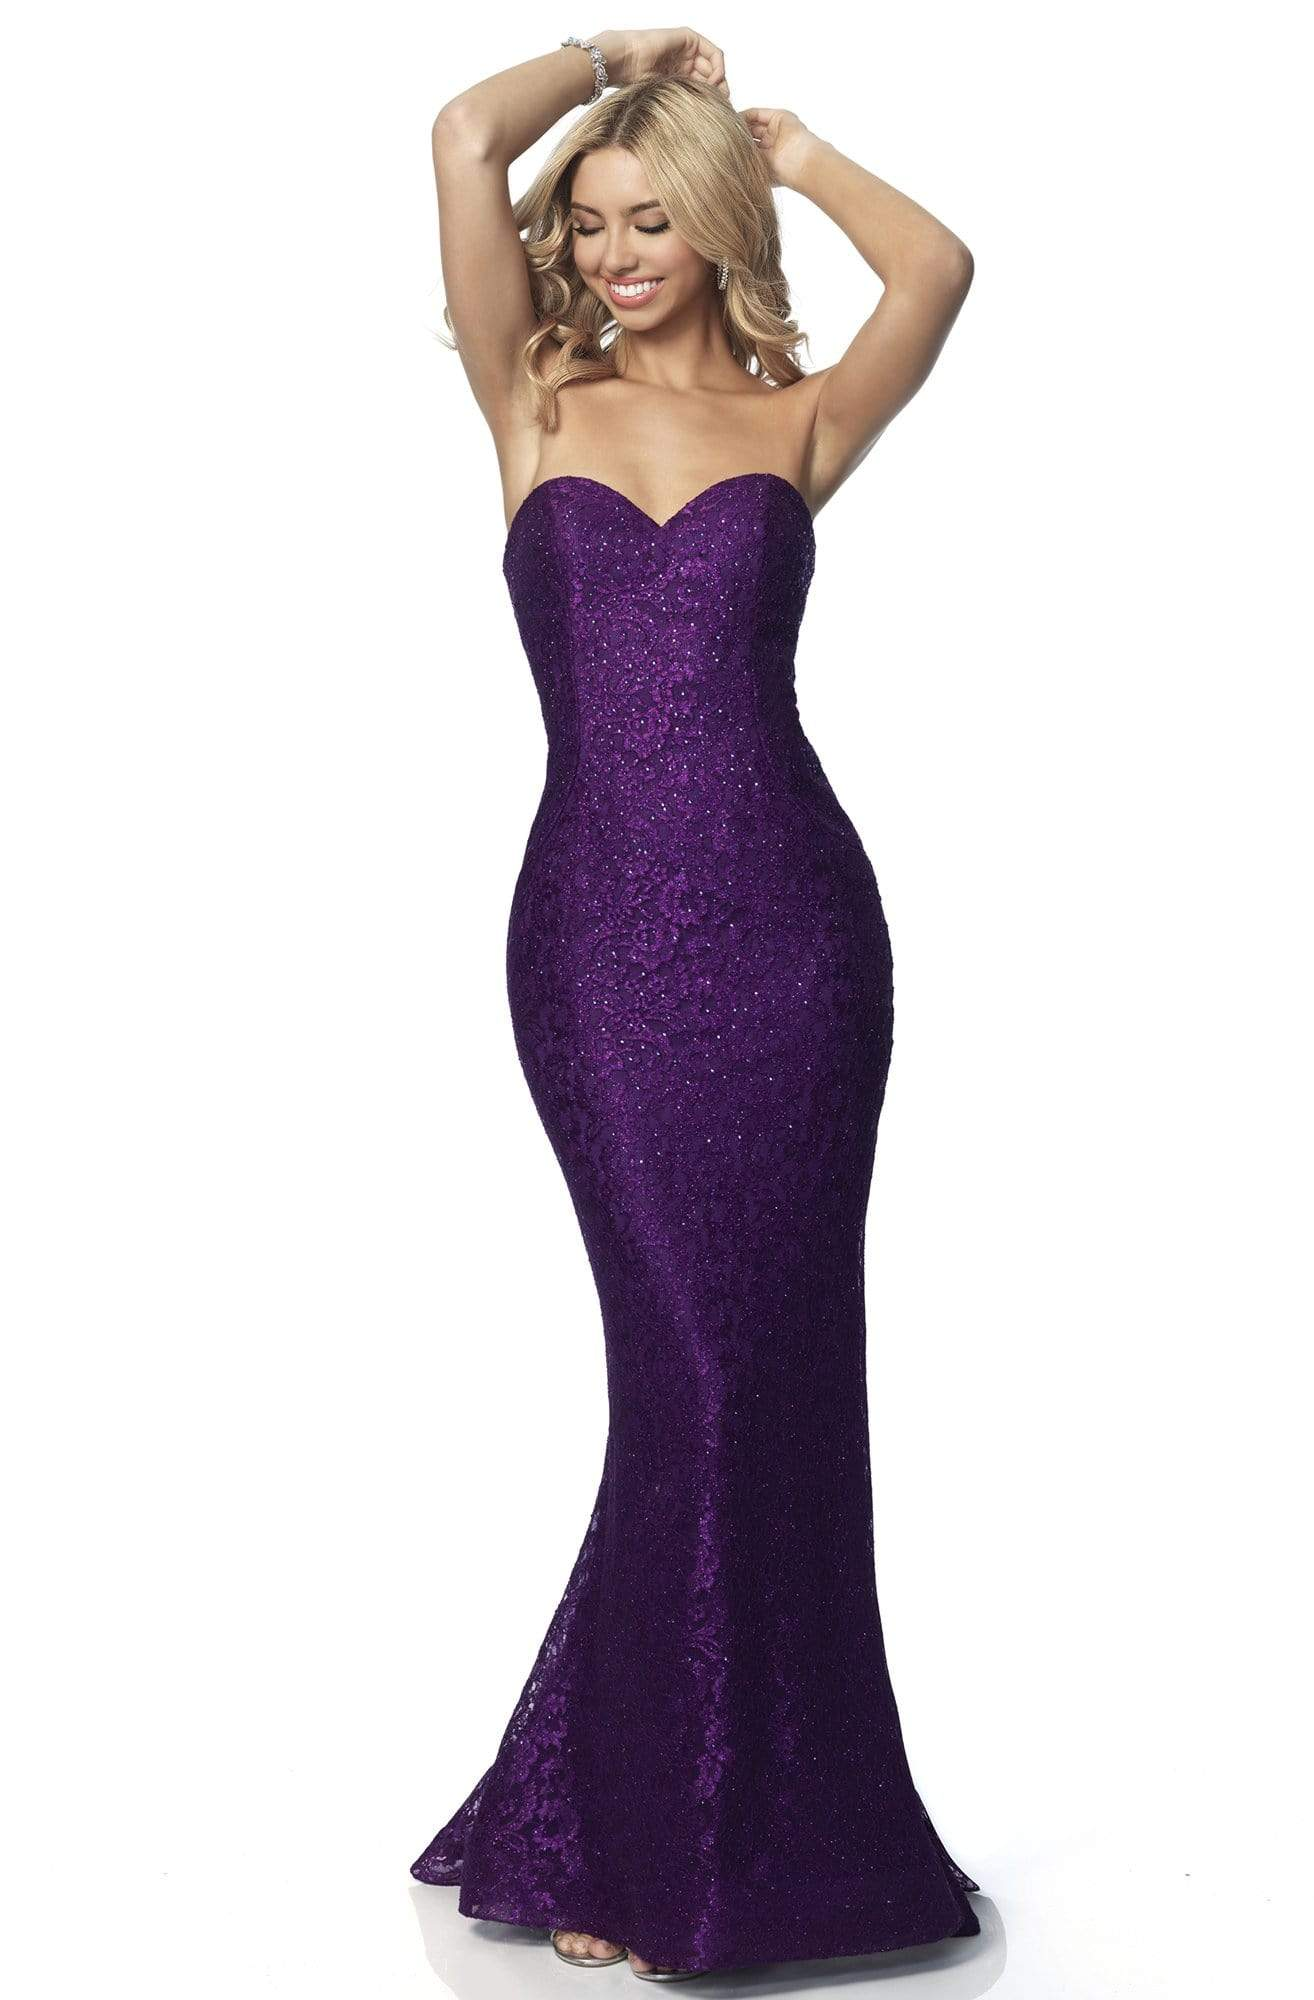 Blush by Alexia Designs - 11874 Strapless Sweetheart Glitter Lace Gown Prom Dresses 0 / Amethyst